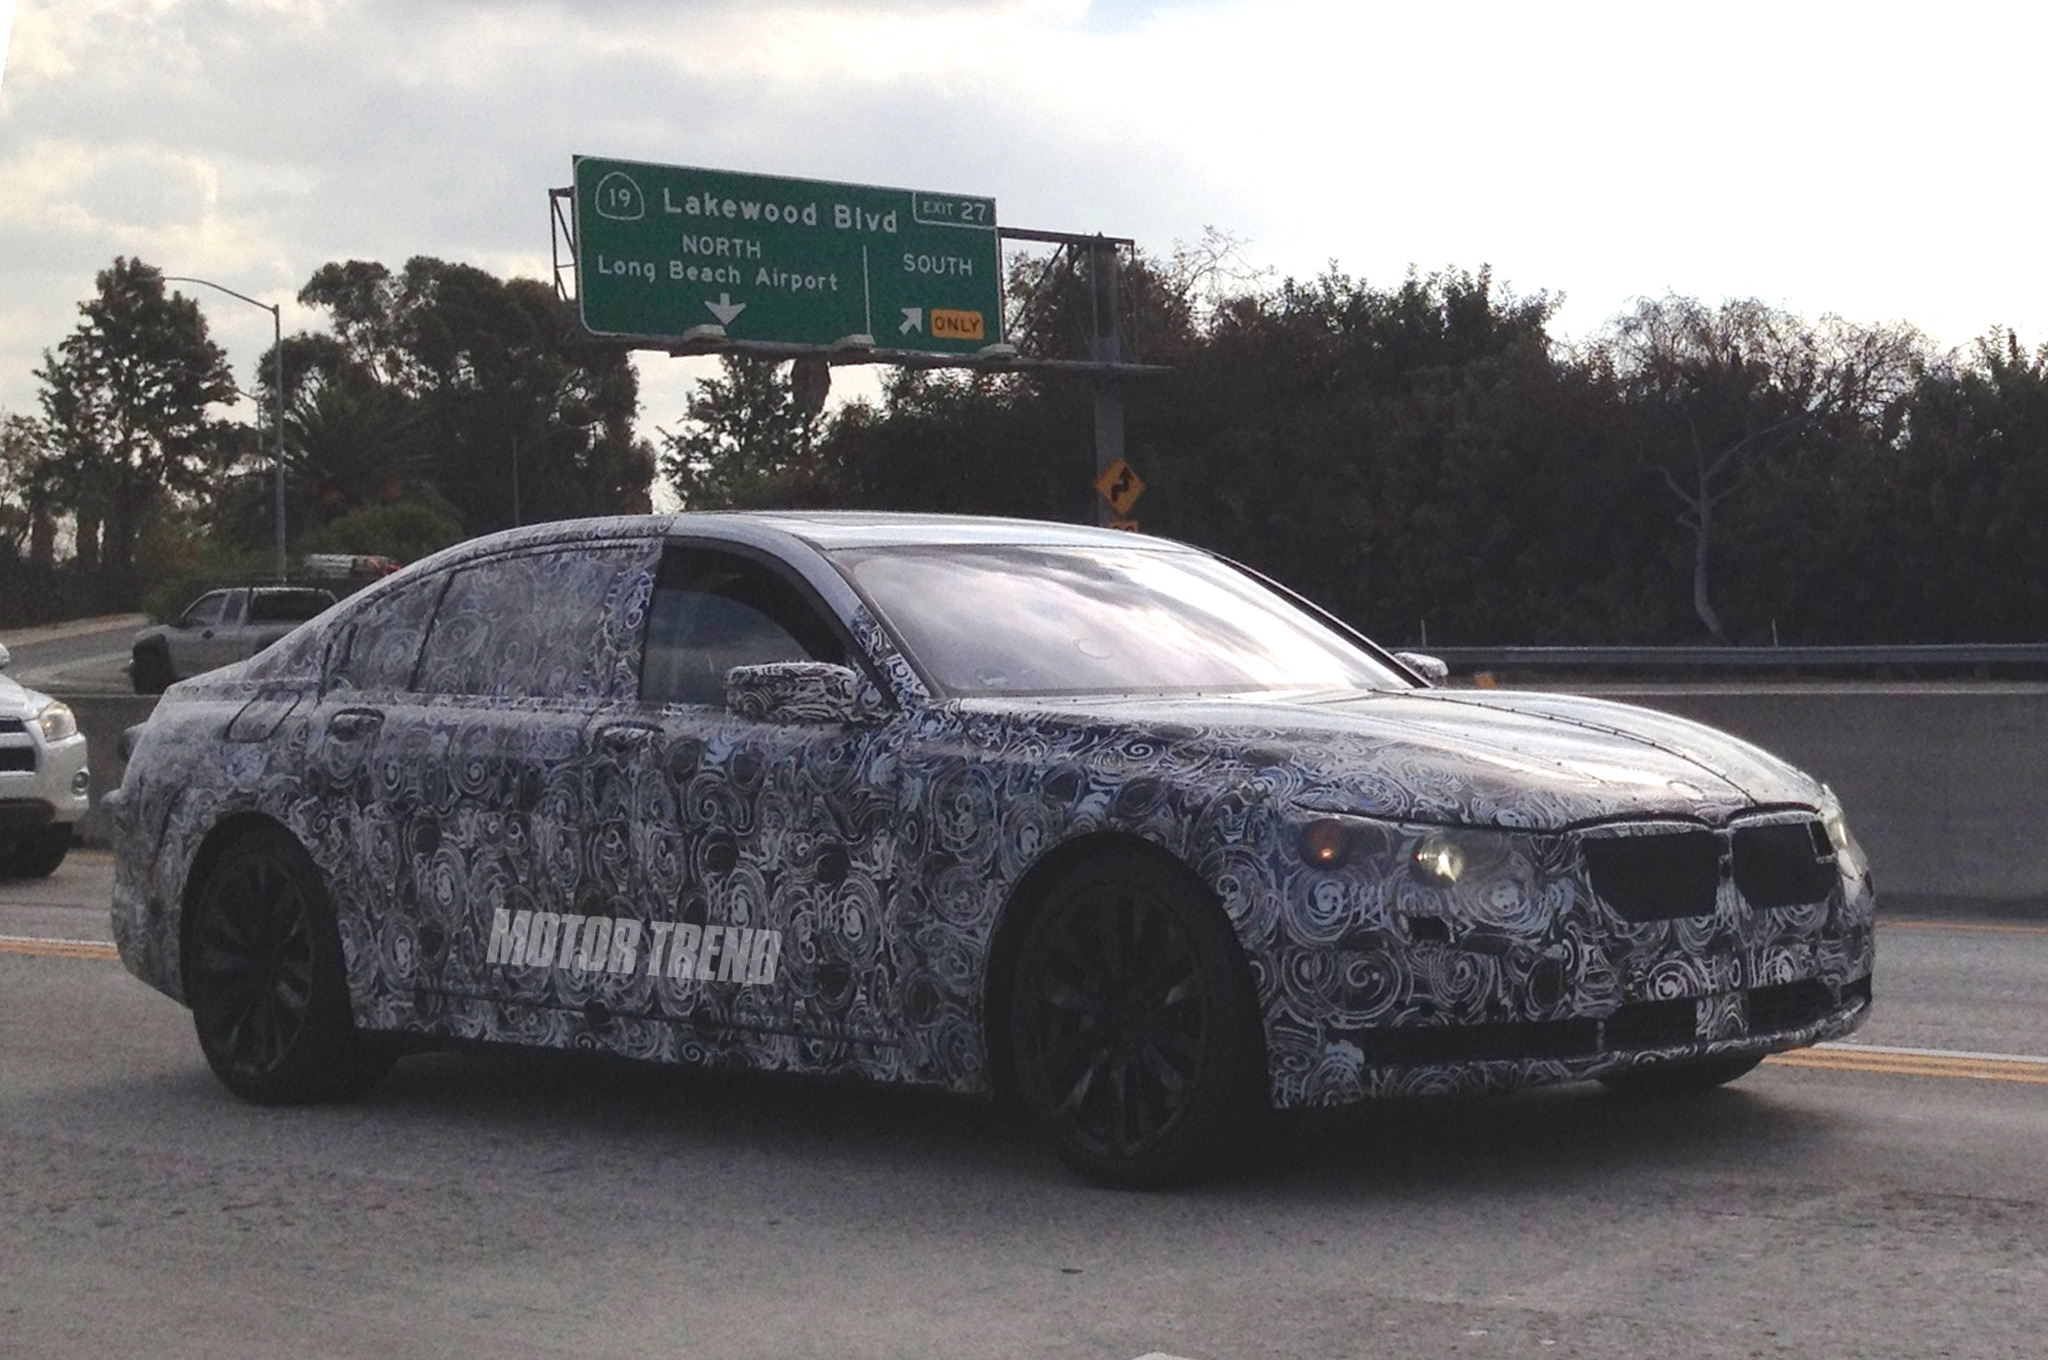 BMW 7 Series Prototype Spotted in Motor Trend's Back Yard